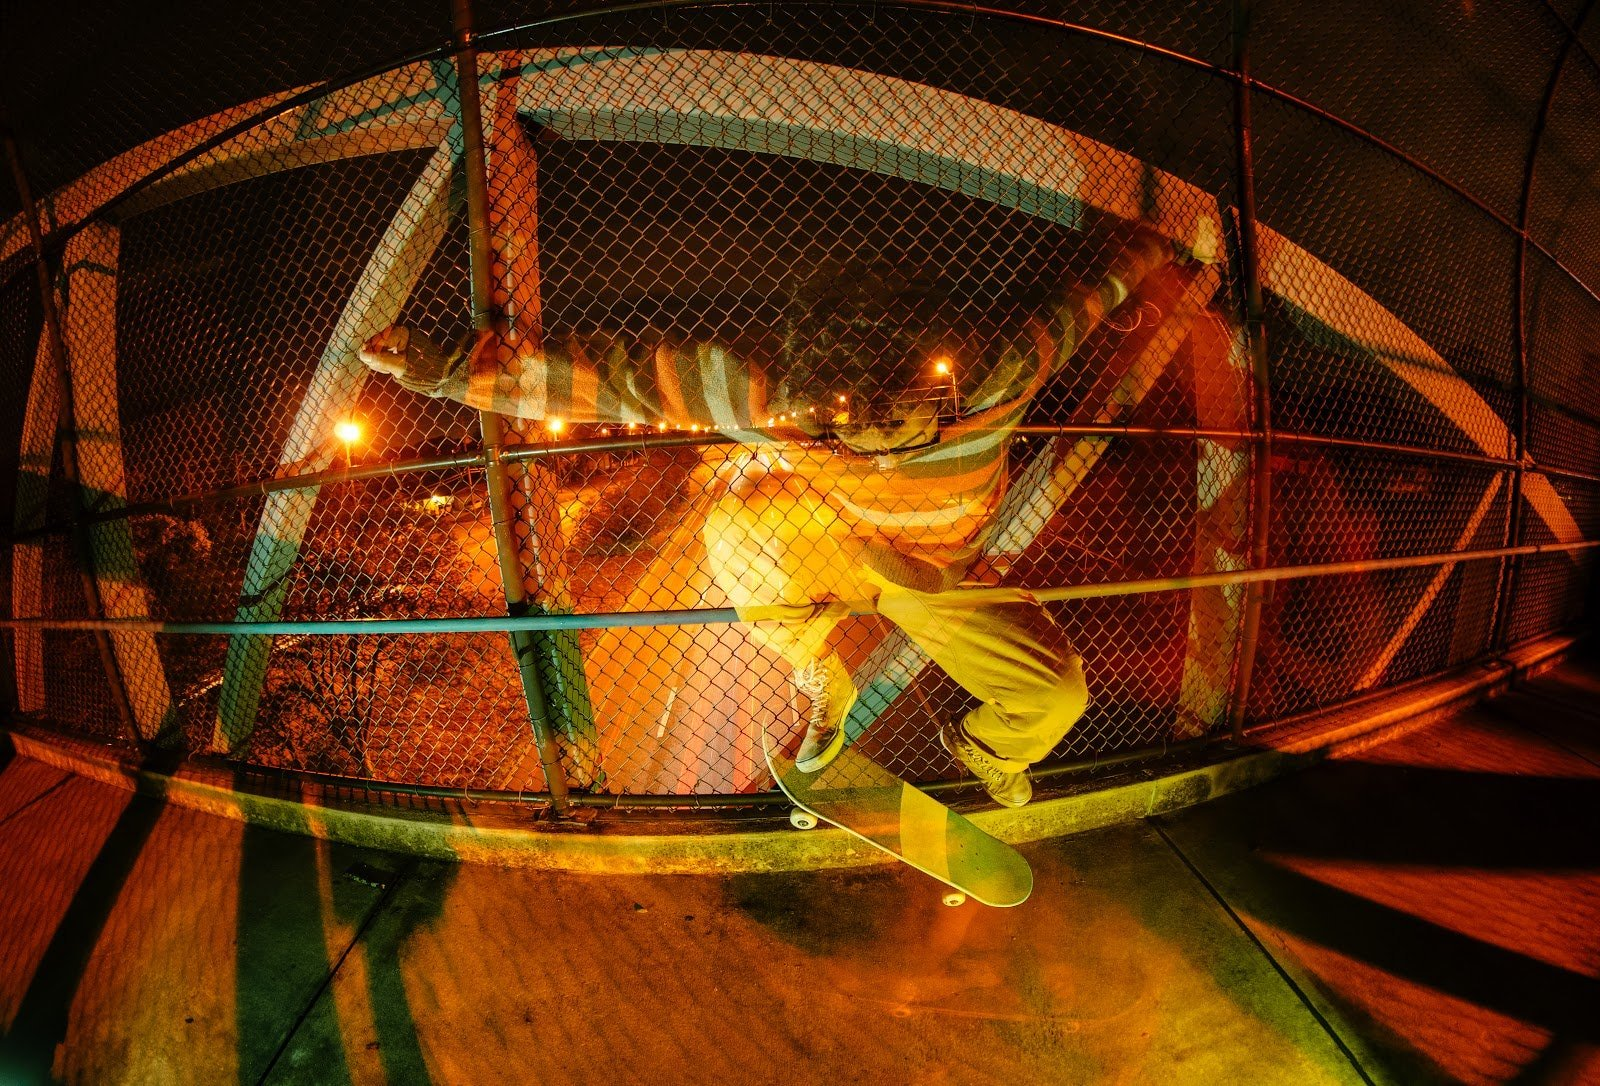 Fisheye action shot of a skater doing a trick by Chad Verzosa